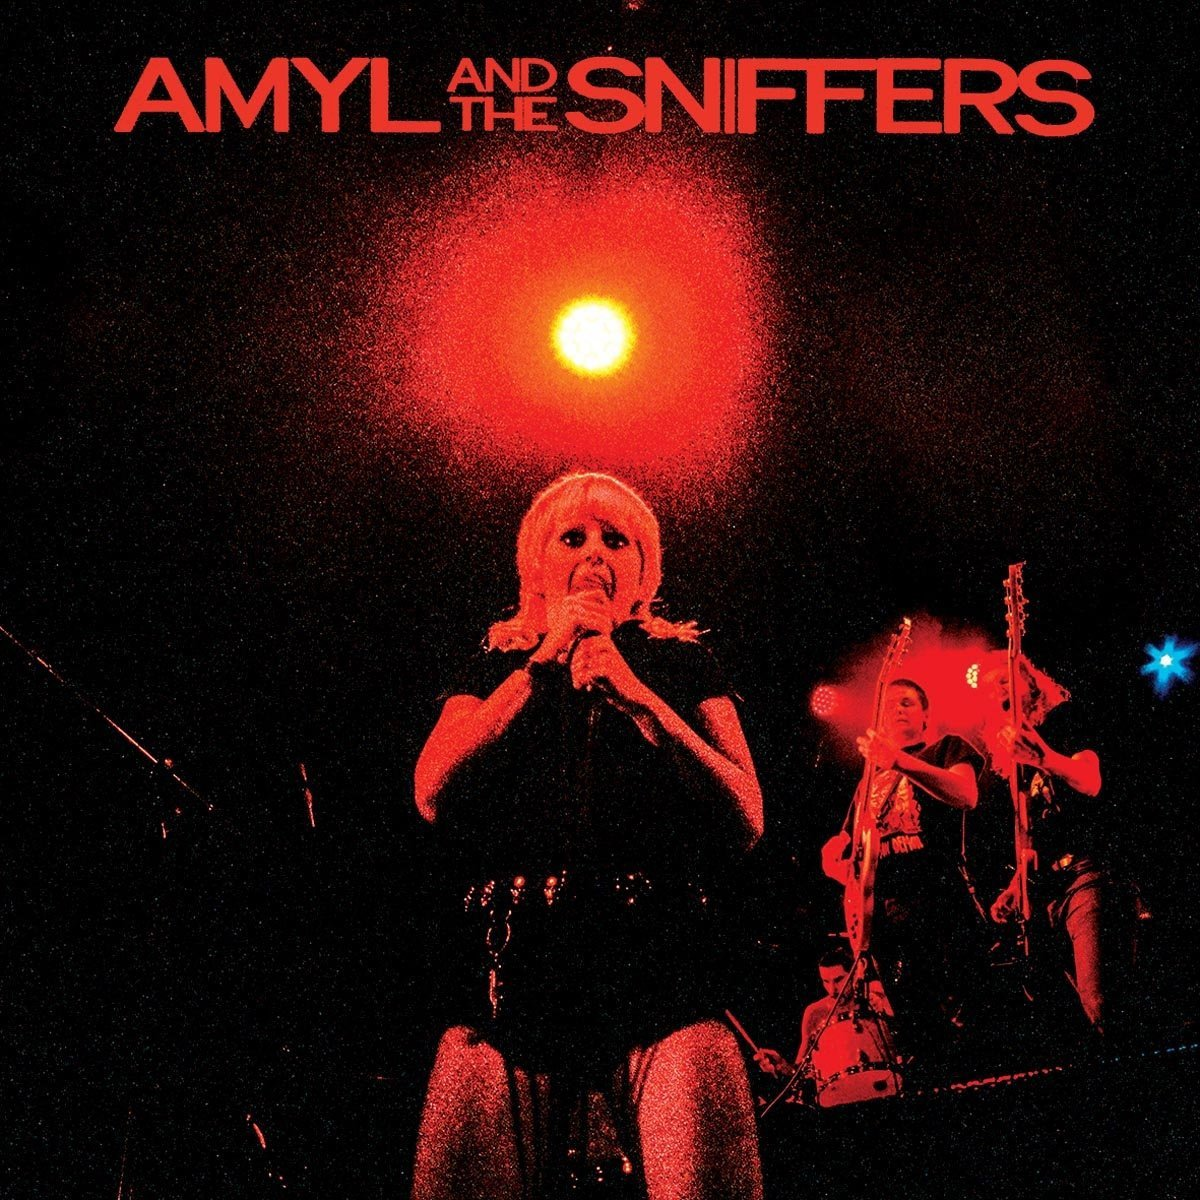 Amyl and The Sniffers - Big Attraction / Giddy Up